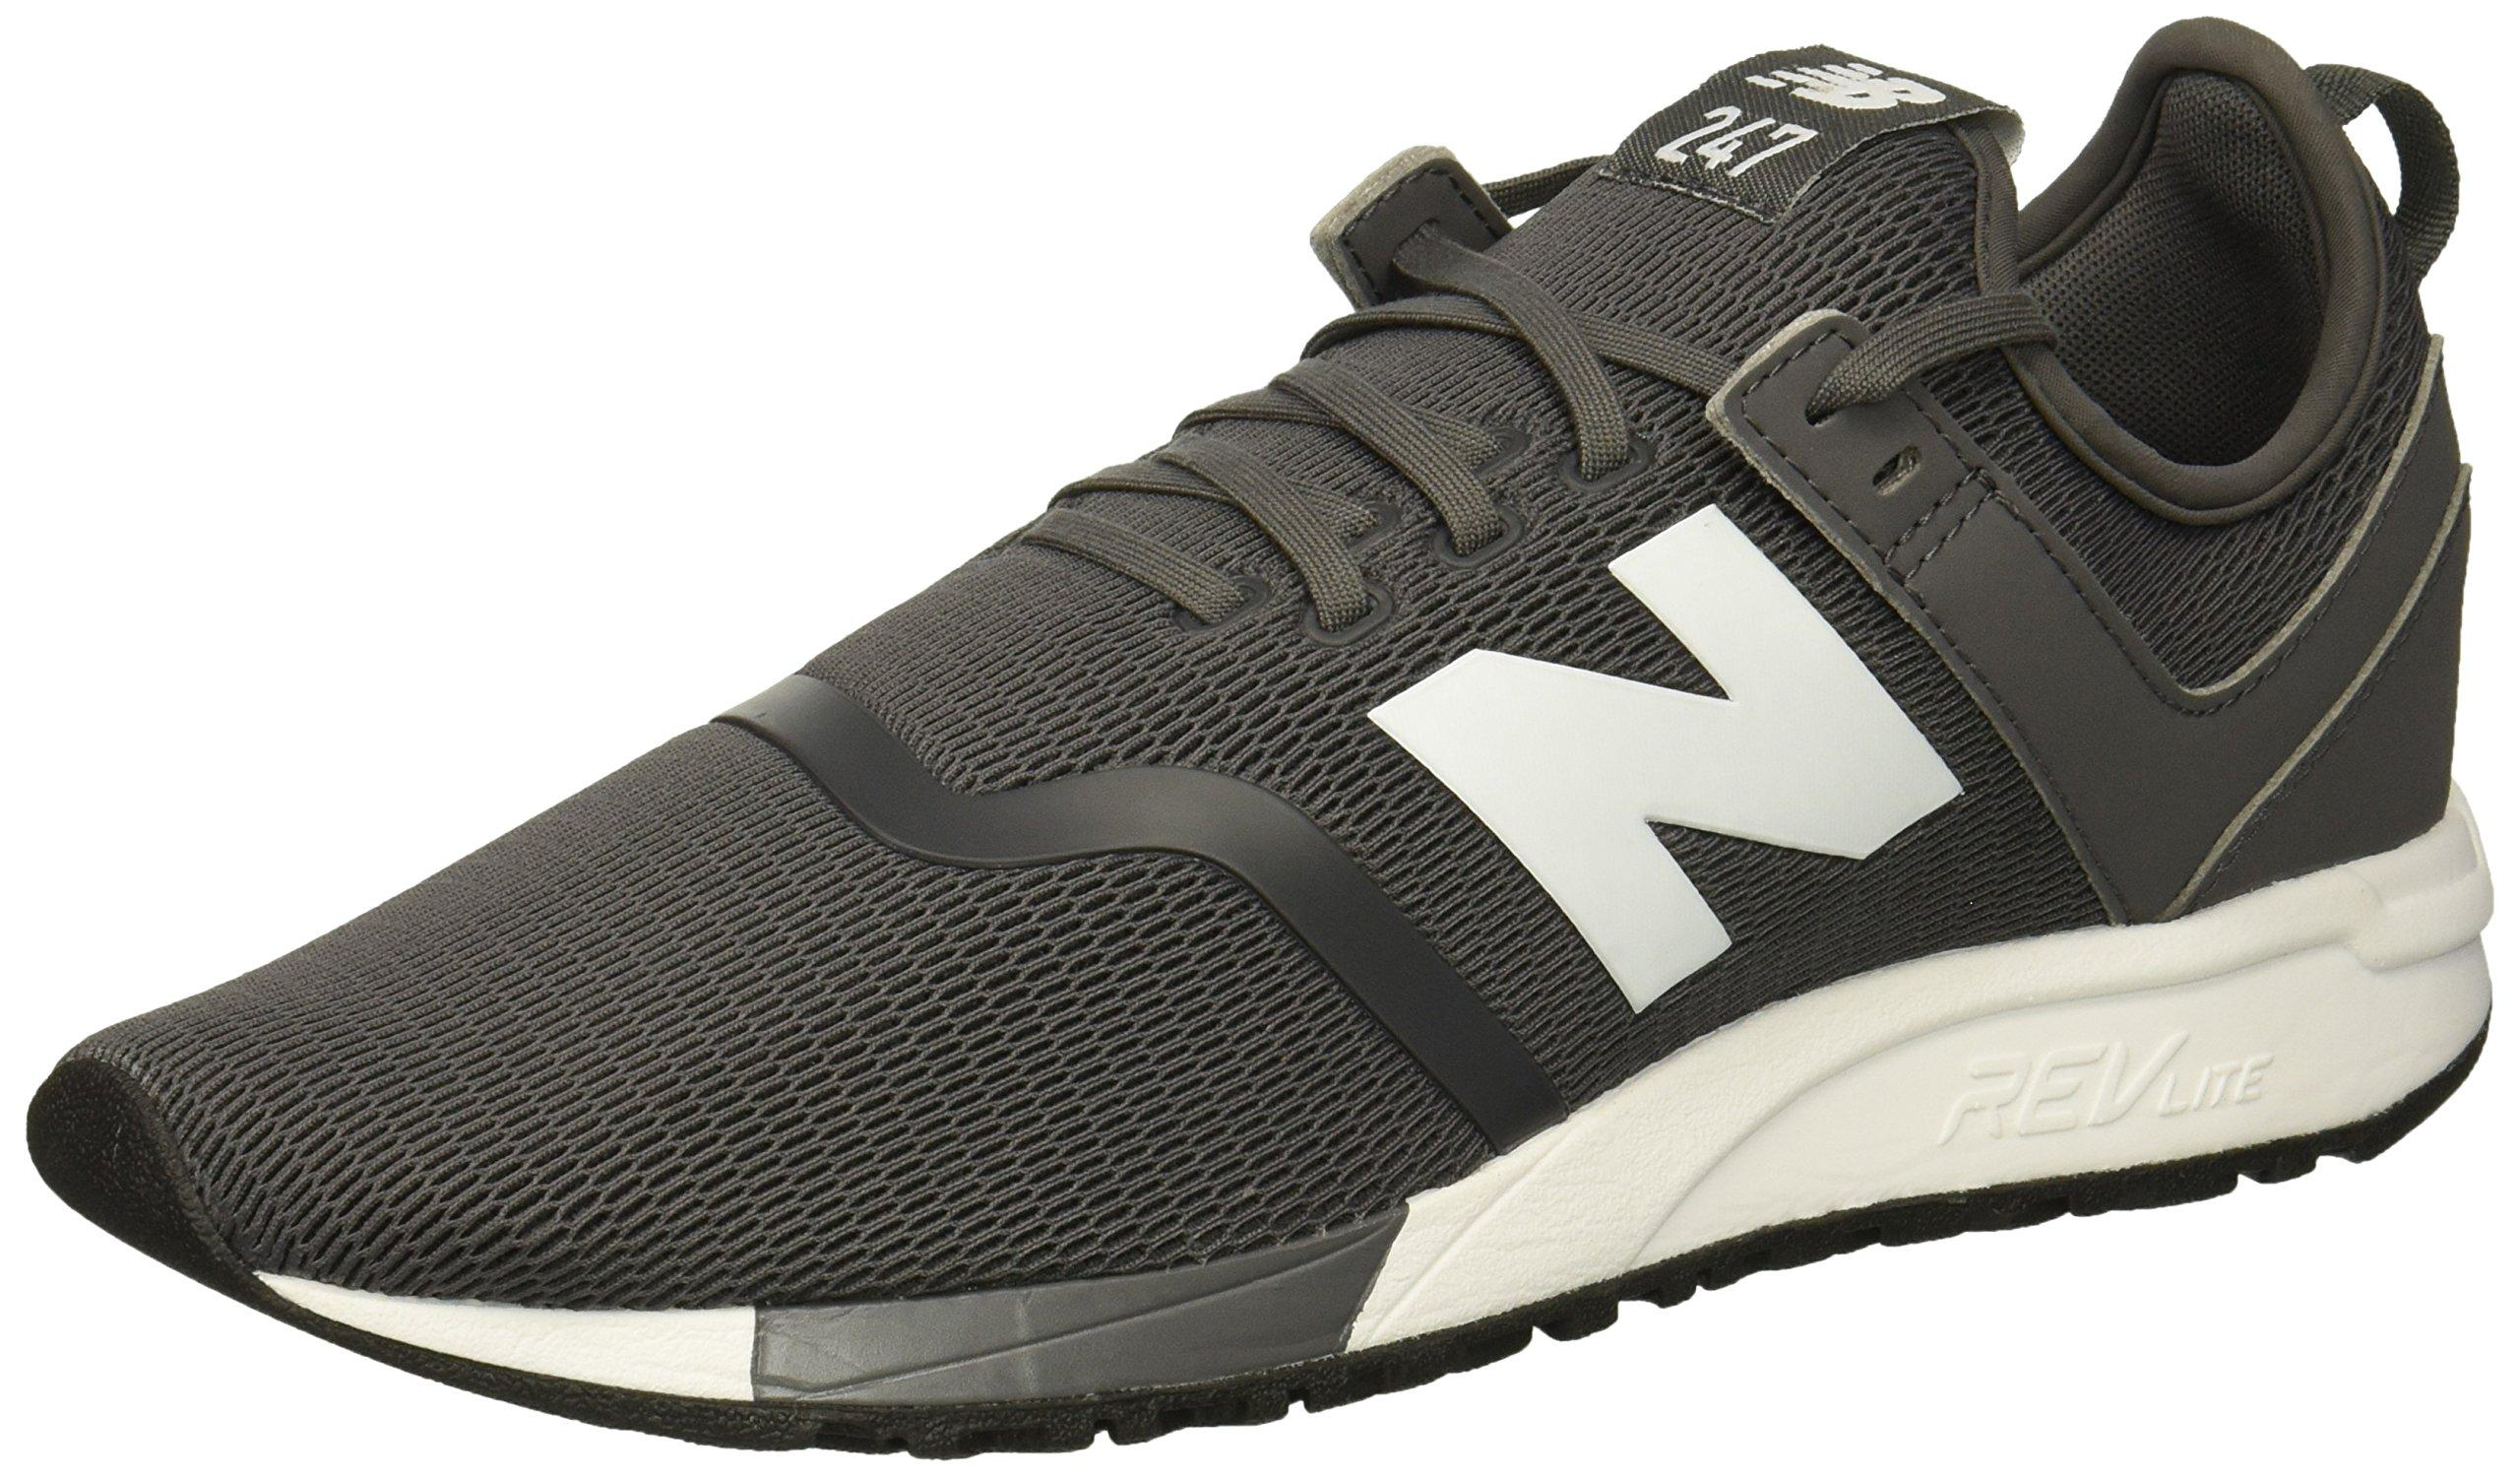 New Balance Synthetic 247v1 Sneaker for Men - Save 3% - Lyst